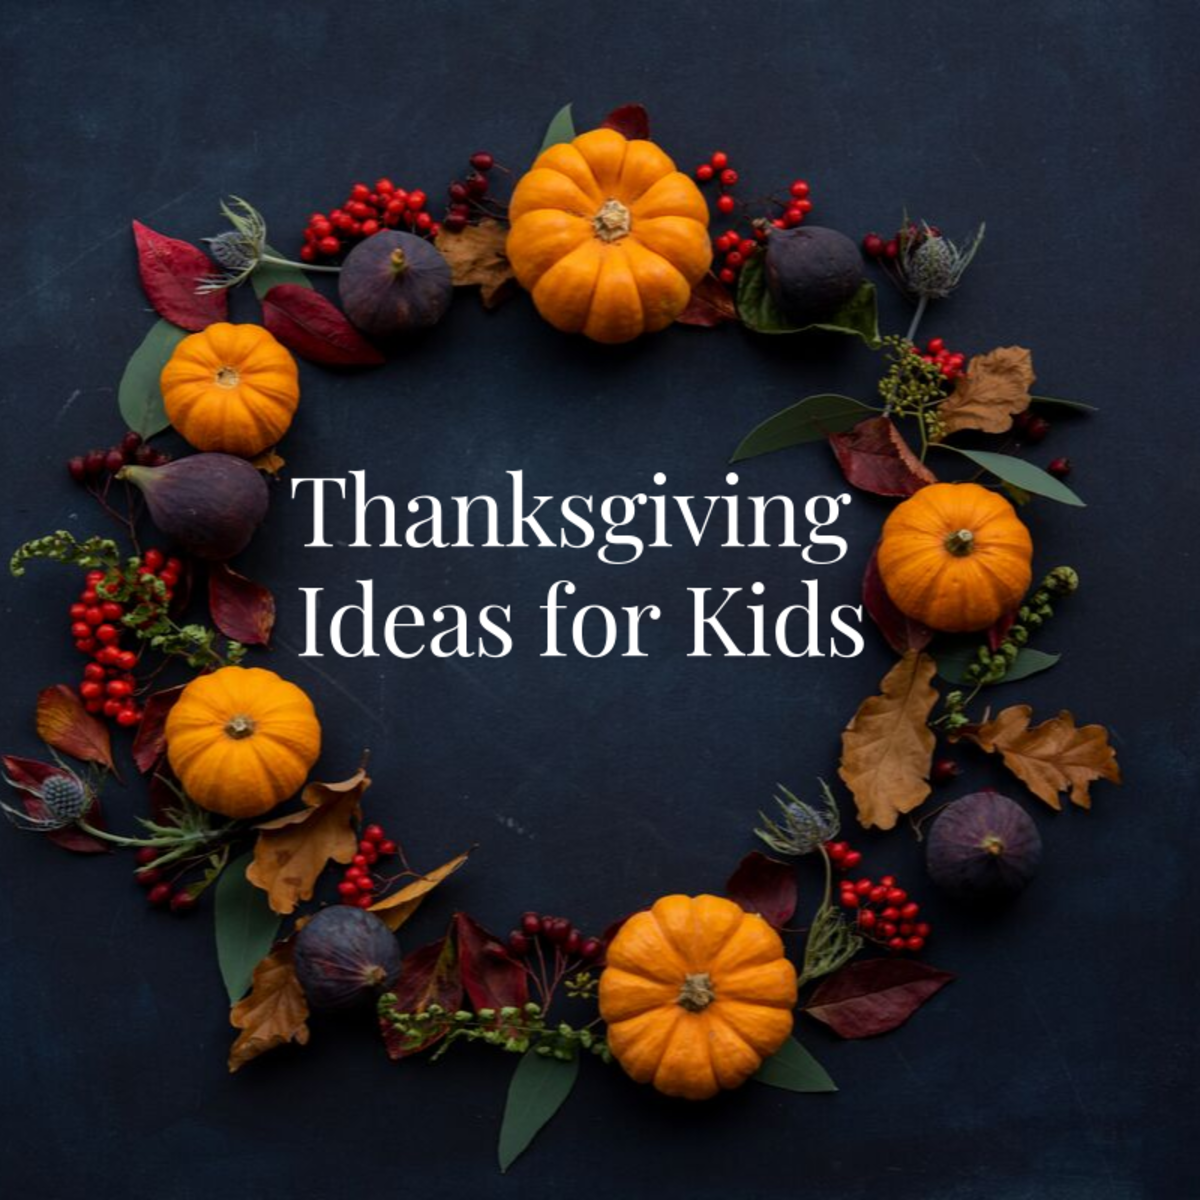 Thanksgiving Crafts, Games, and Activity Ideas for Kids